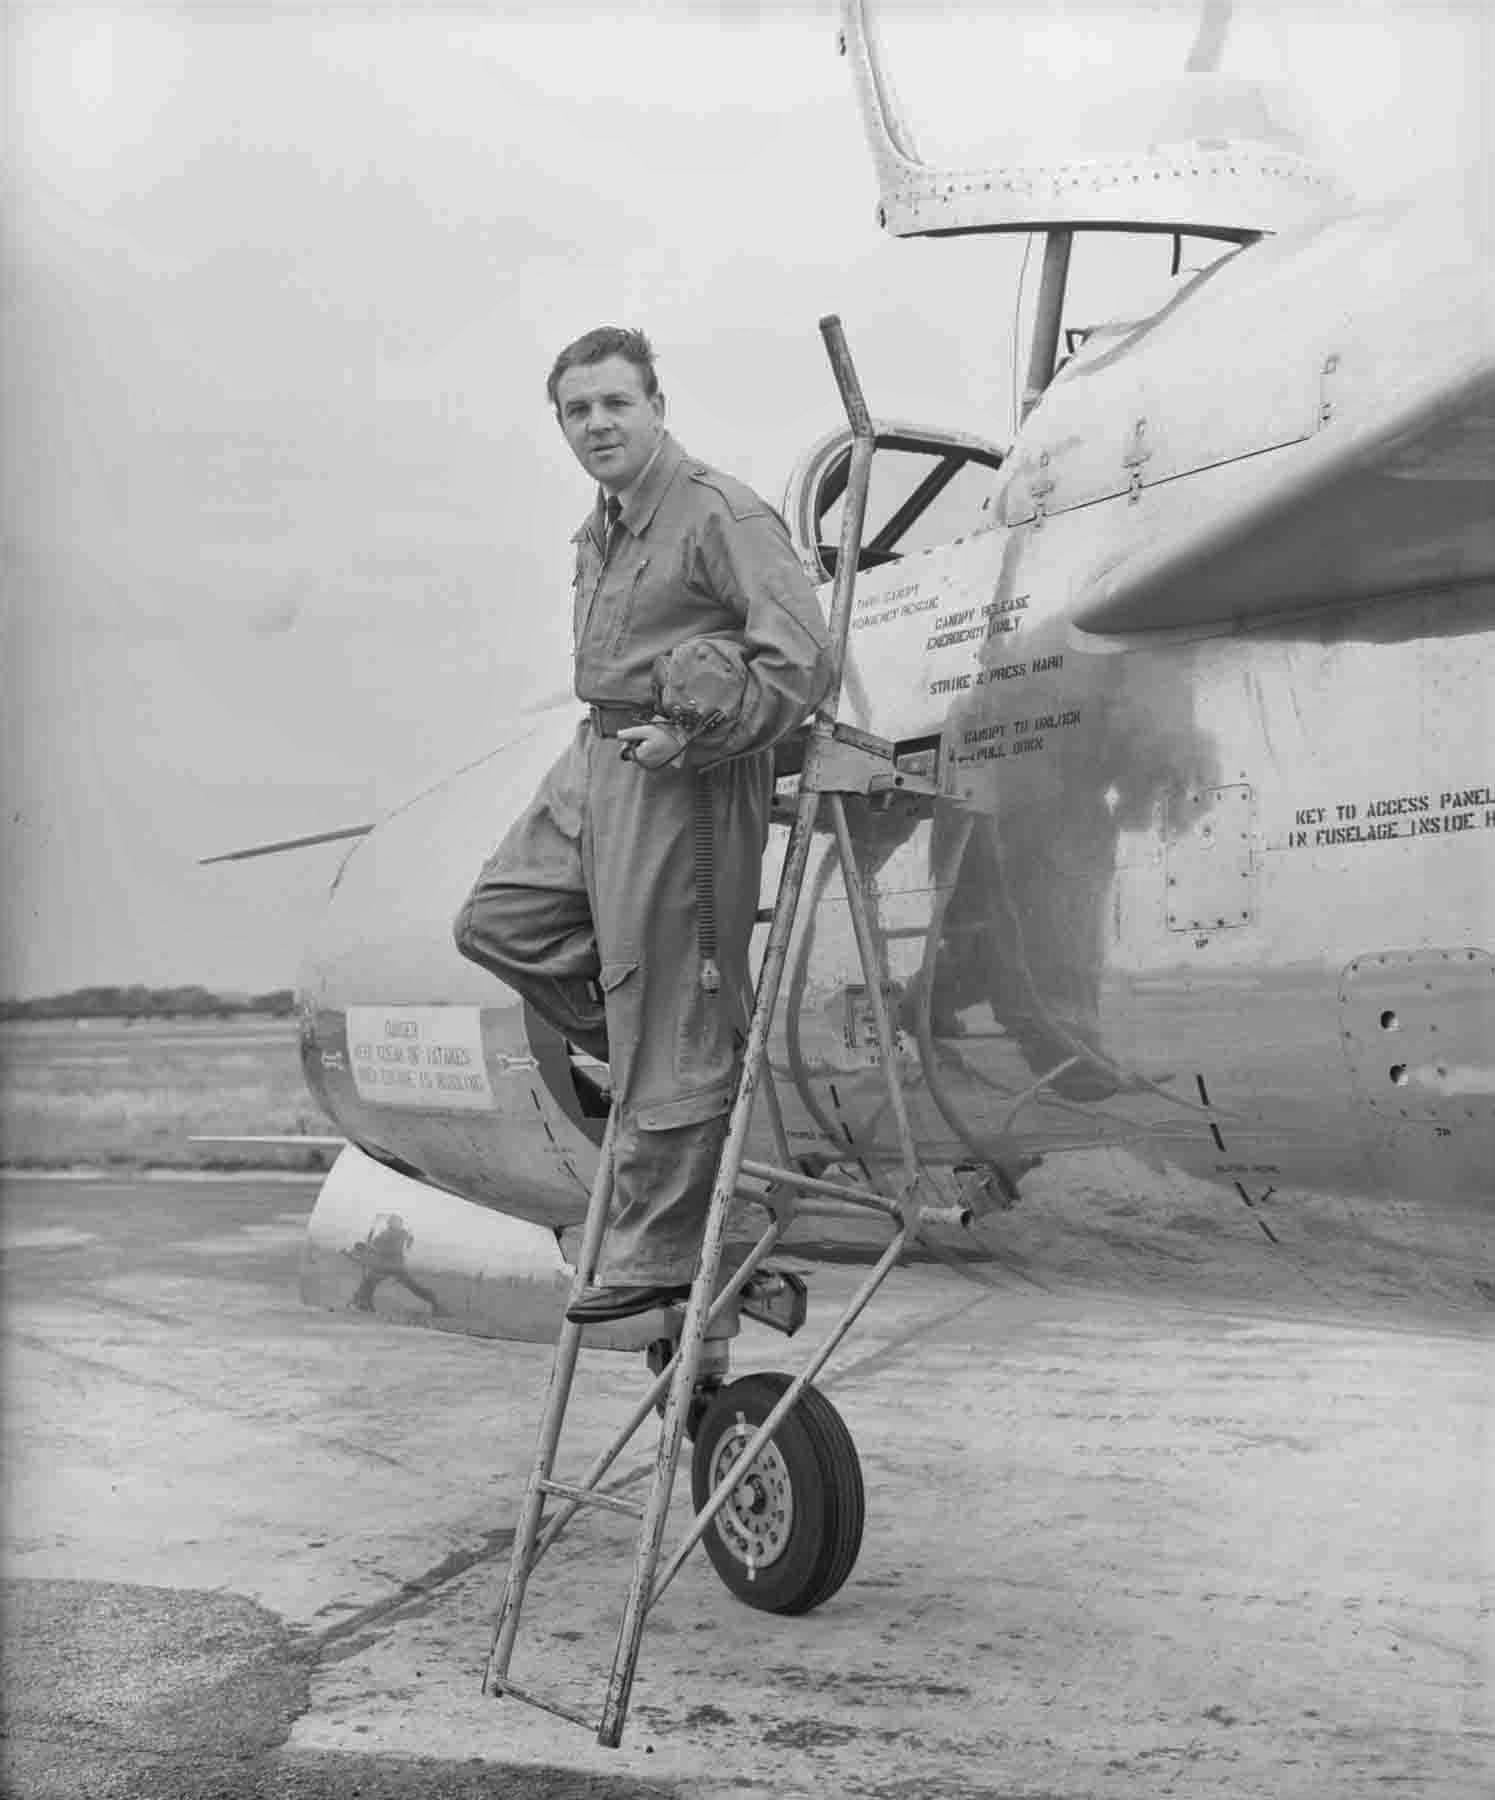 Roland Beamont on the steps of the EE P1A